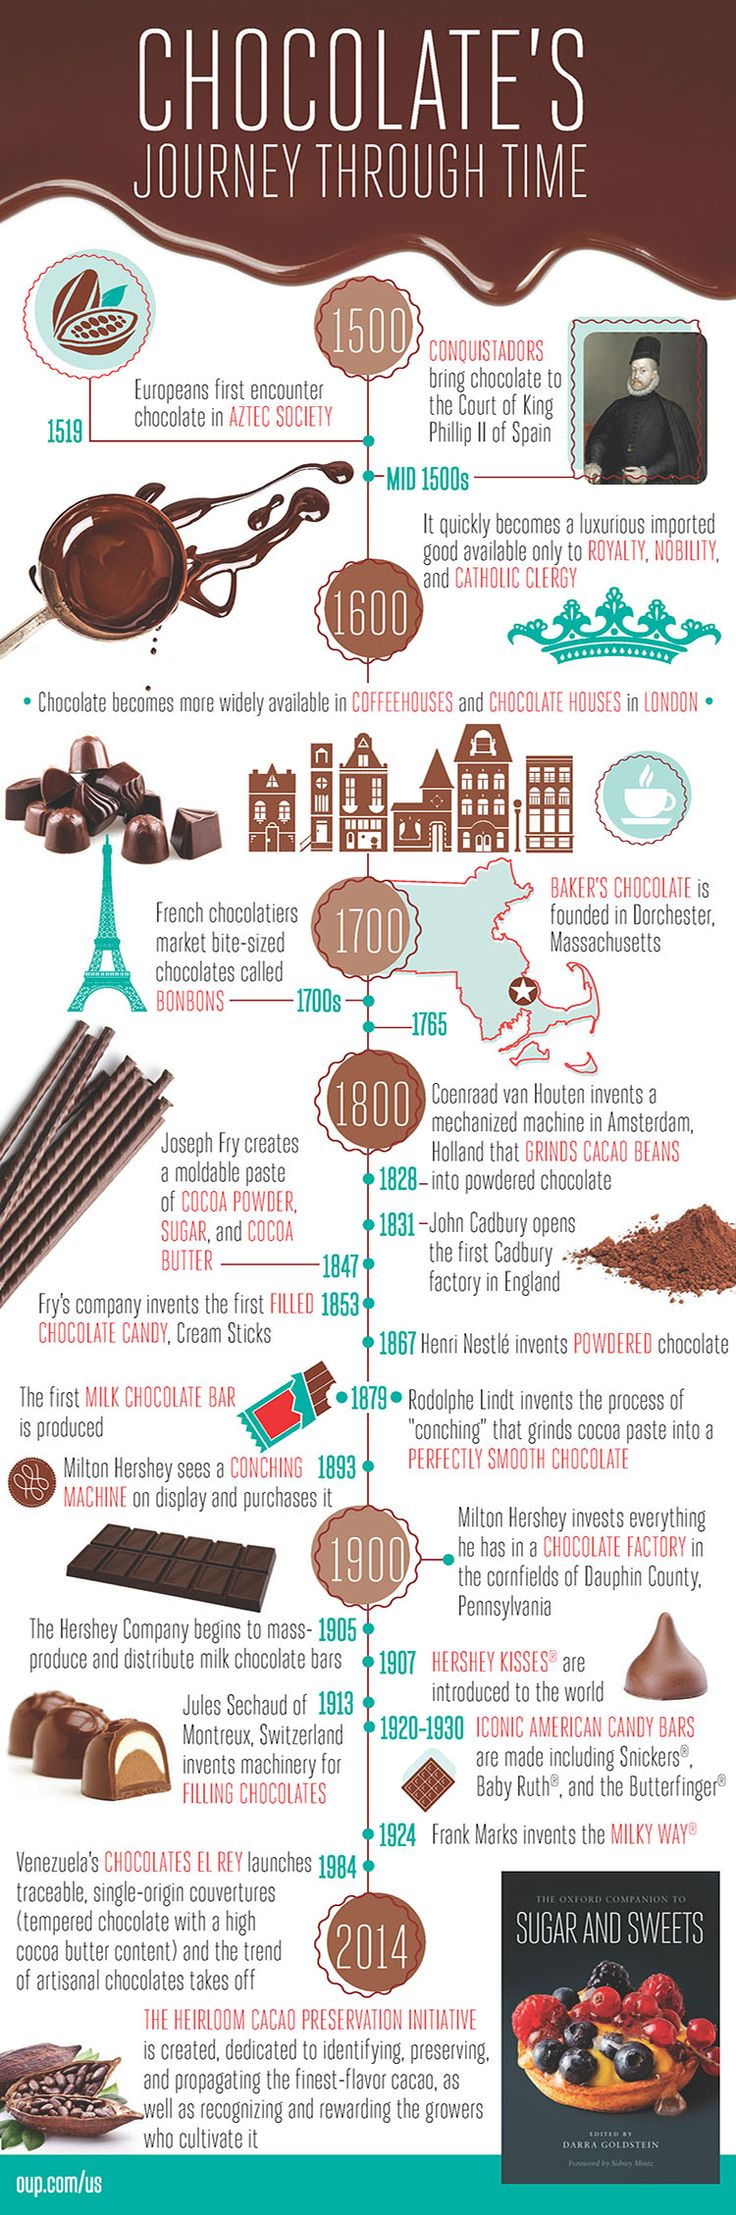 OUP Book on Sugar and Sweets in history created an infographic and shared on blog/facebook with millions of readers. Example of a Great Marketing Effort from a book publisher for an author.